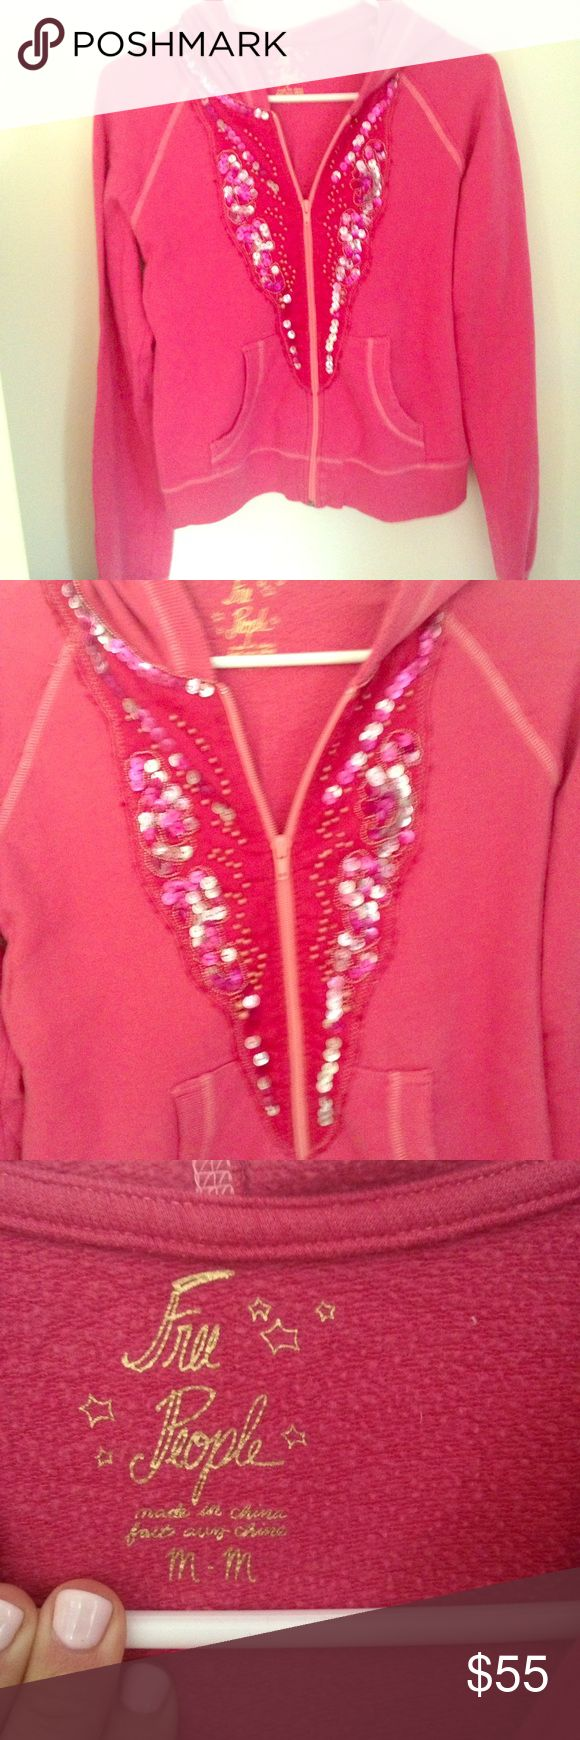 Free People ✌️SALE☮️ Zip Up Sweatshirt Free People hot pink zip up hoodie with sequins and beads. Size Medium. Great condition only worn a few times. Free People Tops Sweatshirts & Hoodies